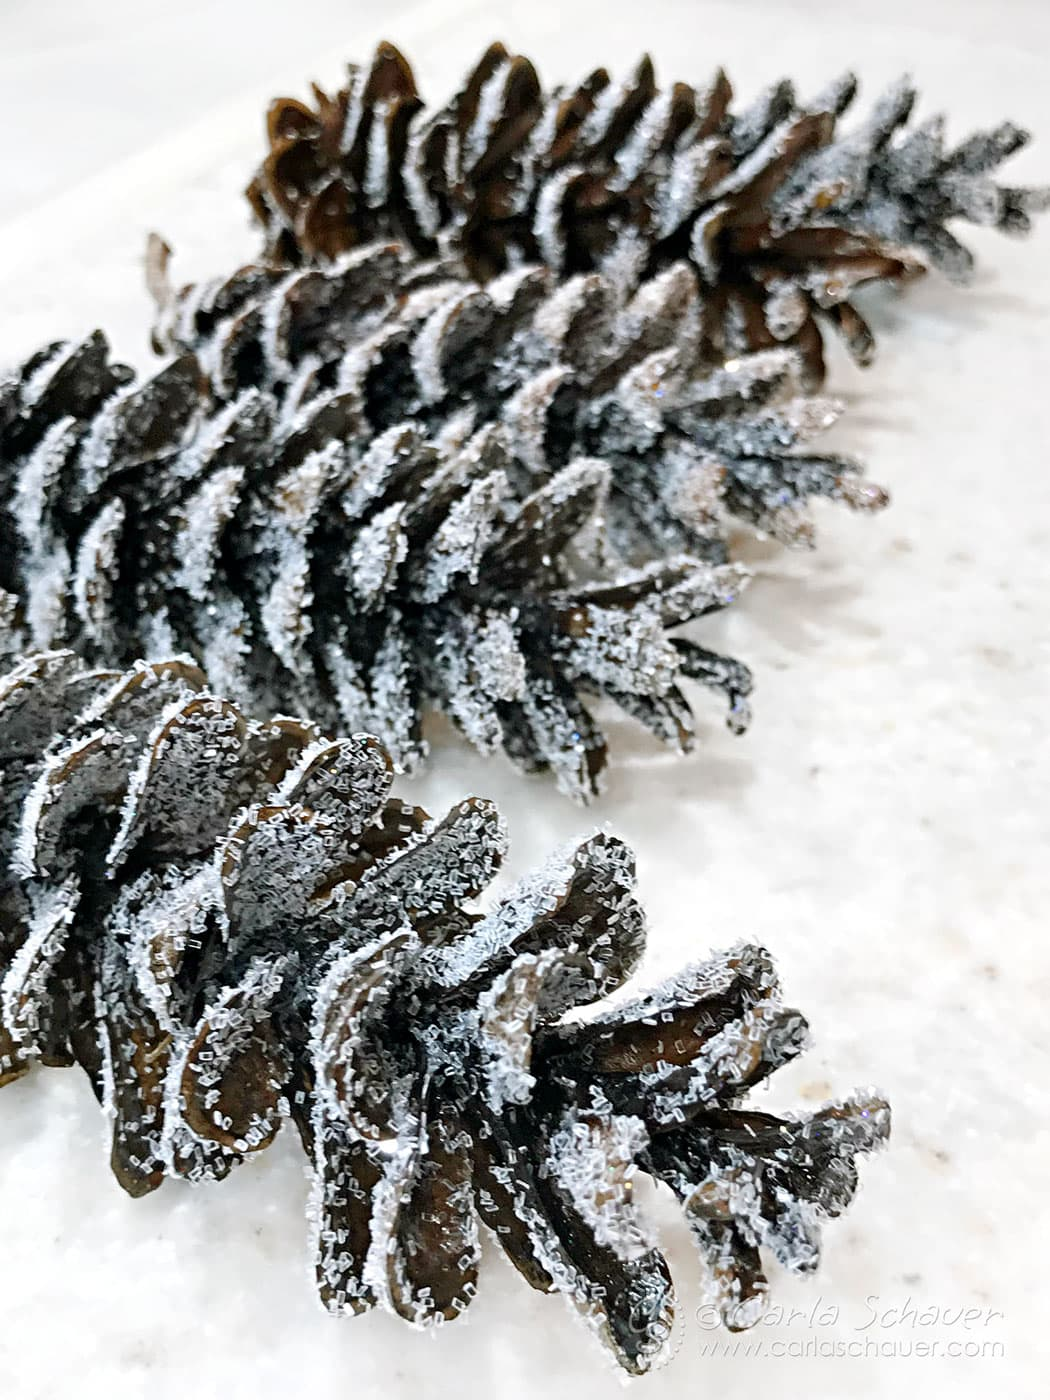 Glittered pine cones laying on waxed paper sheet to harden wax.